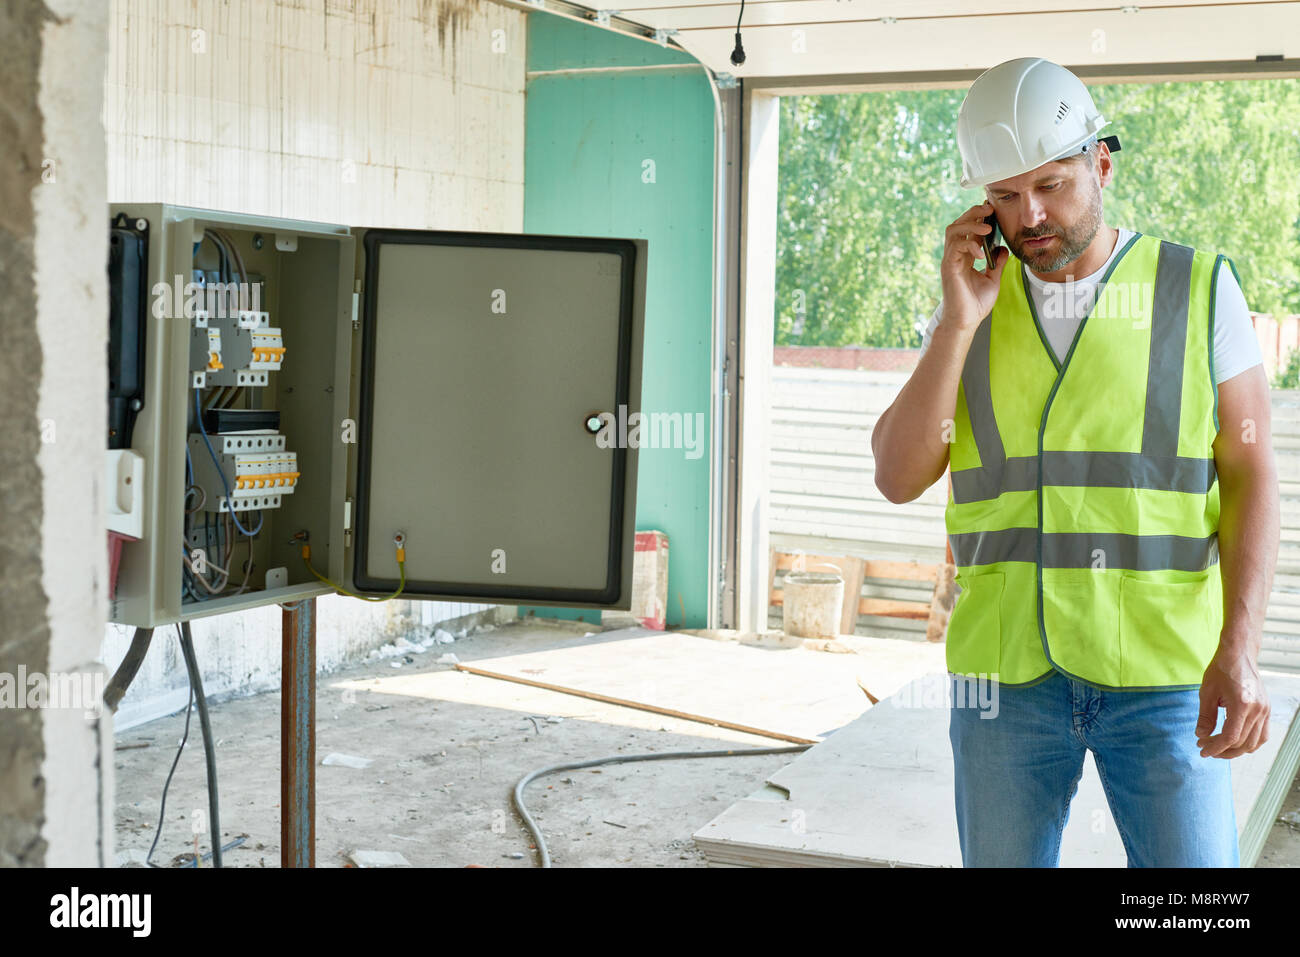 Construction Foreman Speaking by Phone - Stock Image